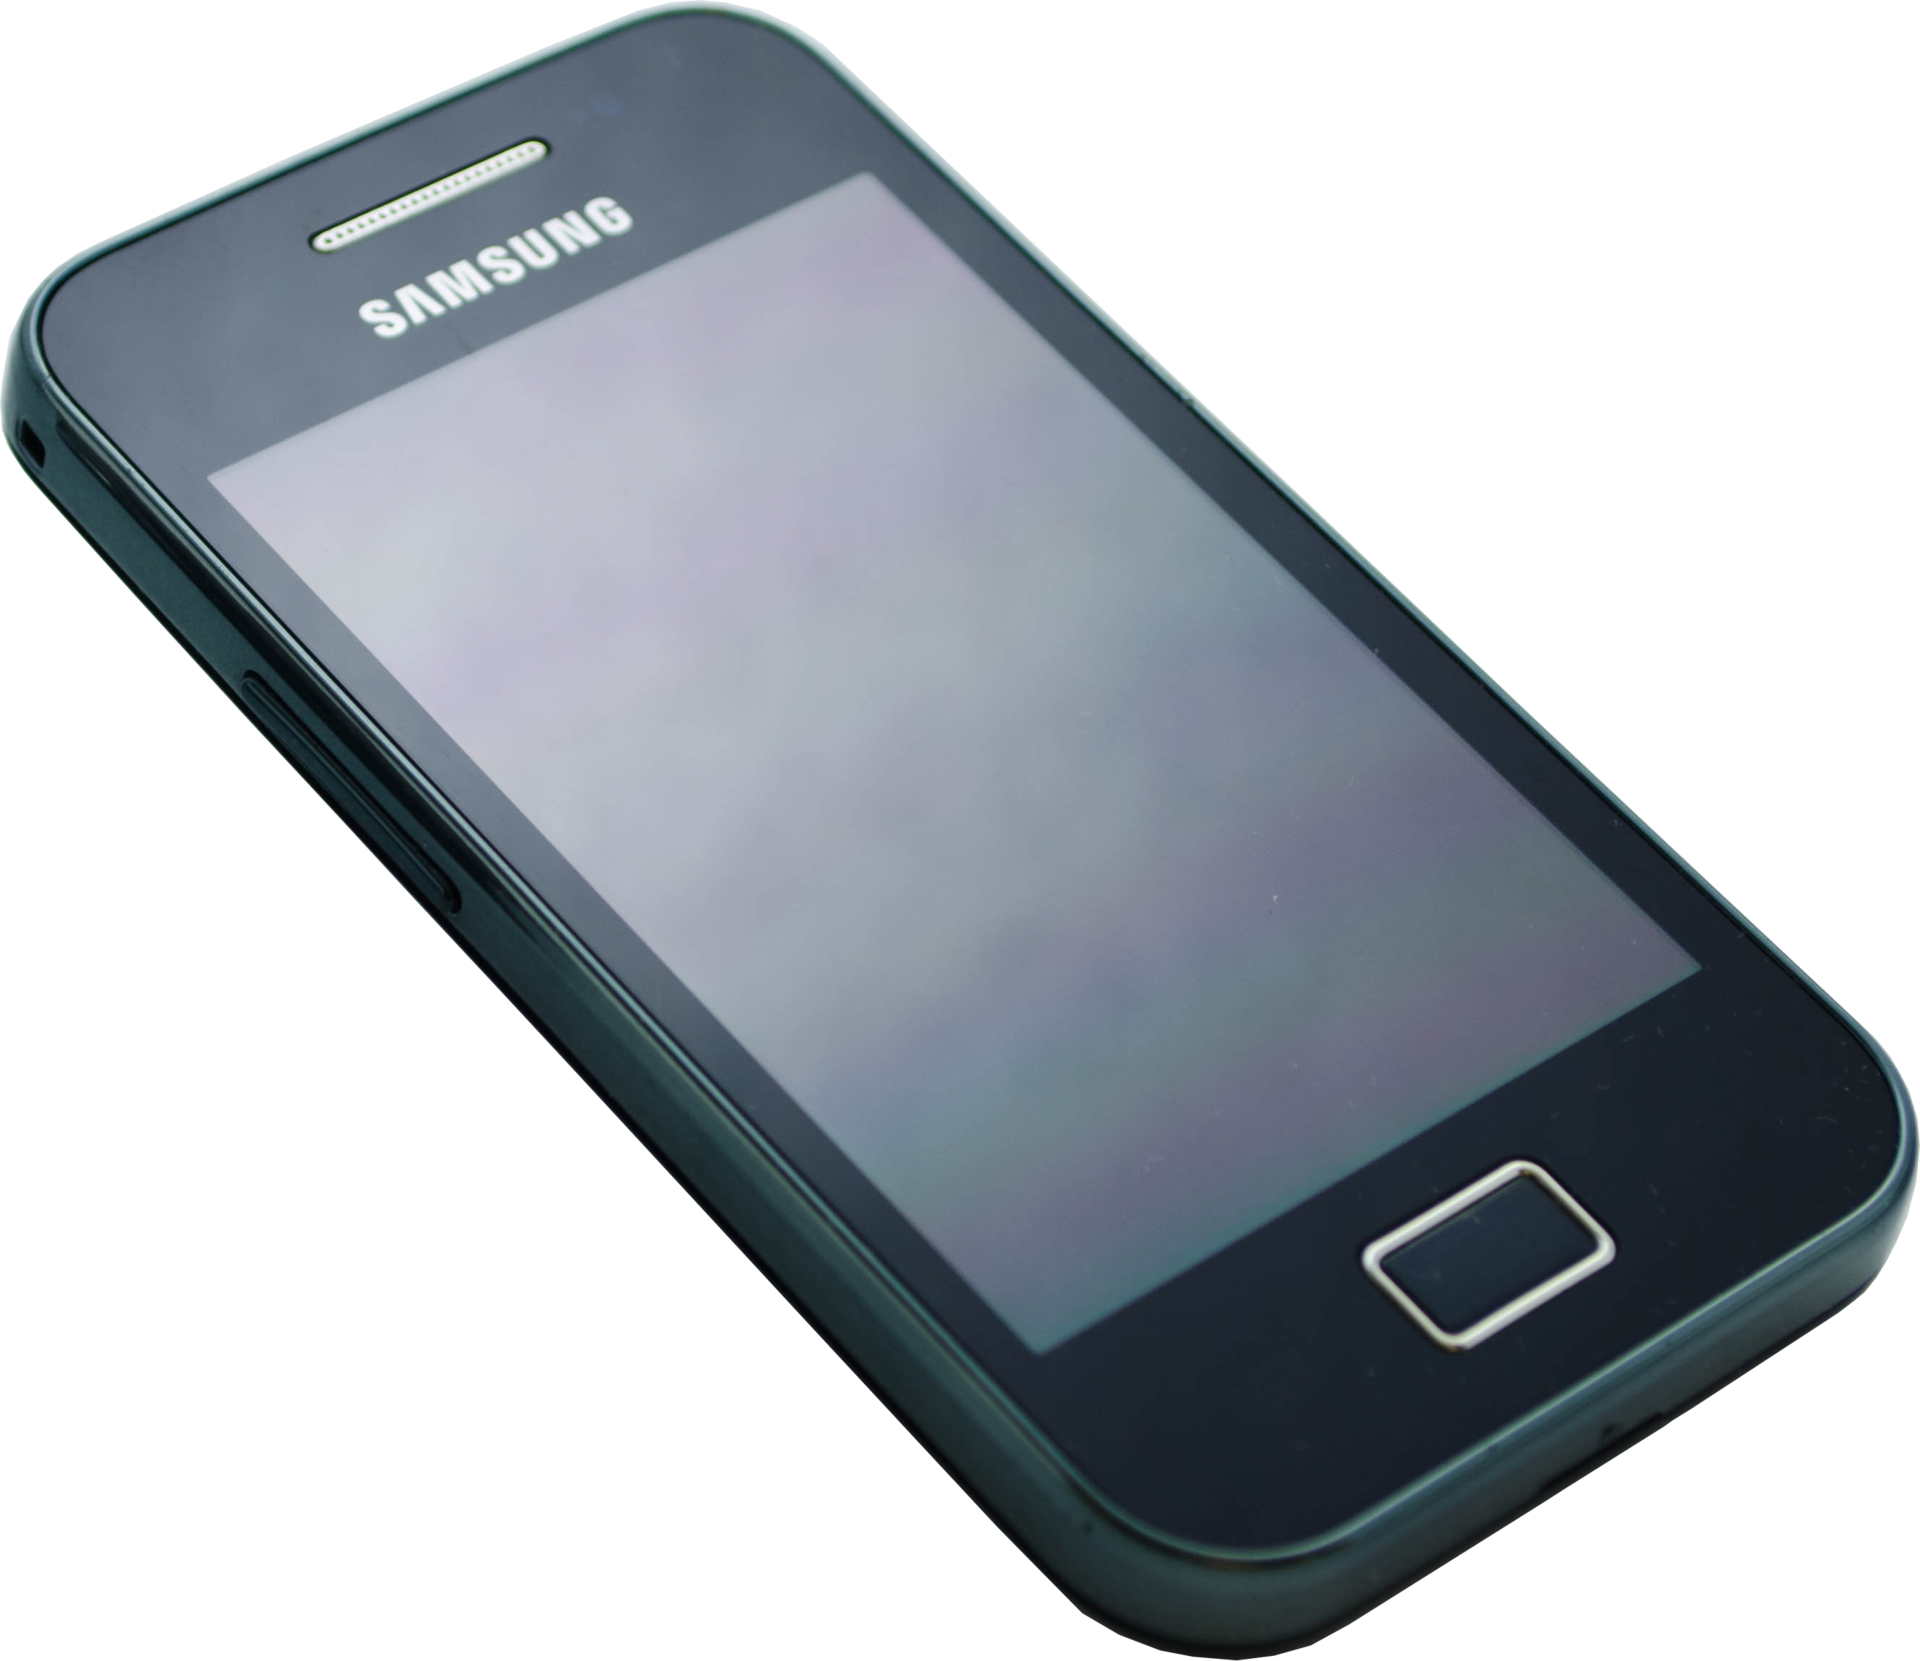 samsung galaxy ace user manual gt s5830i